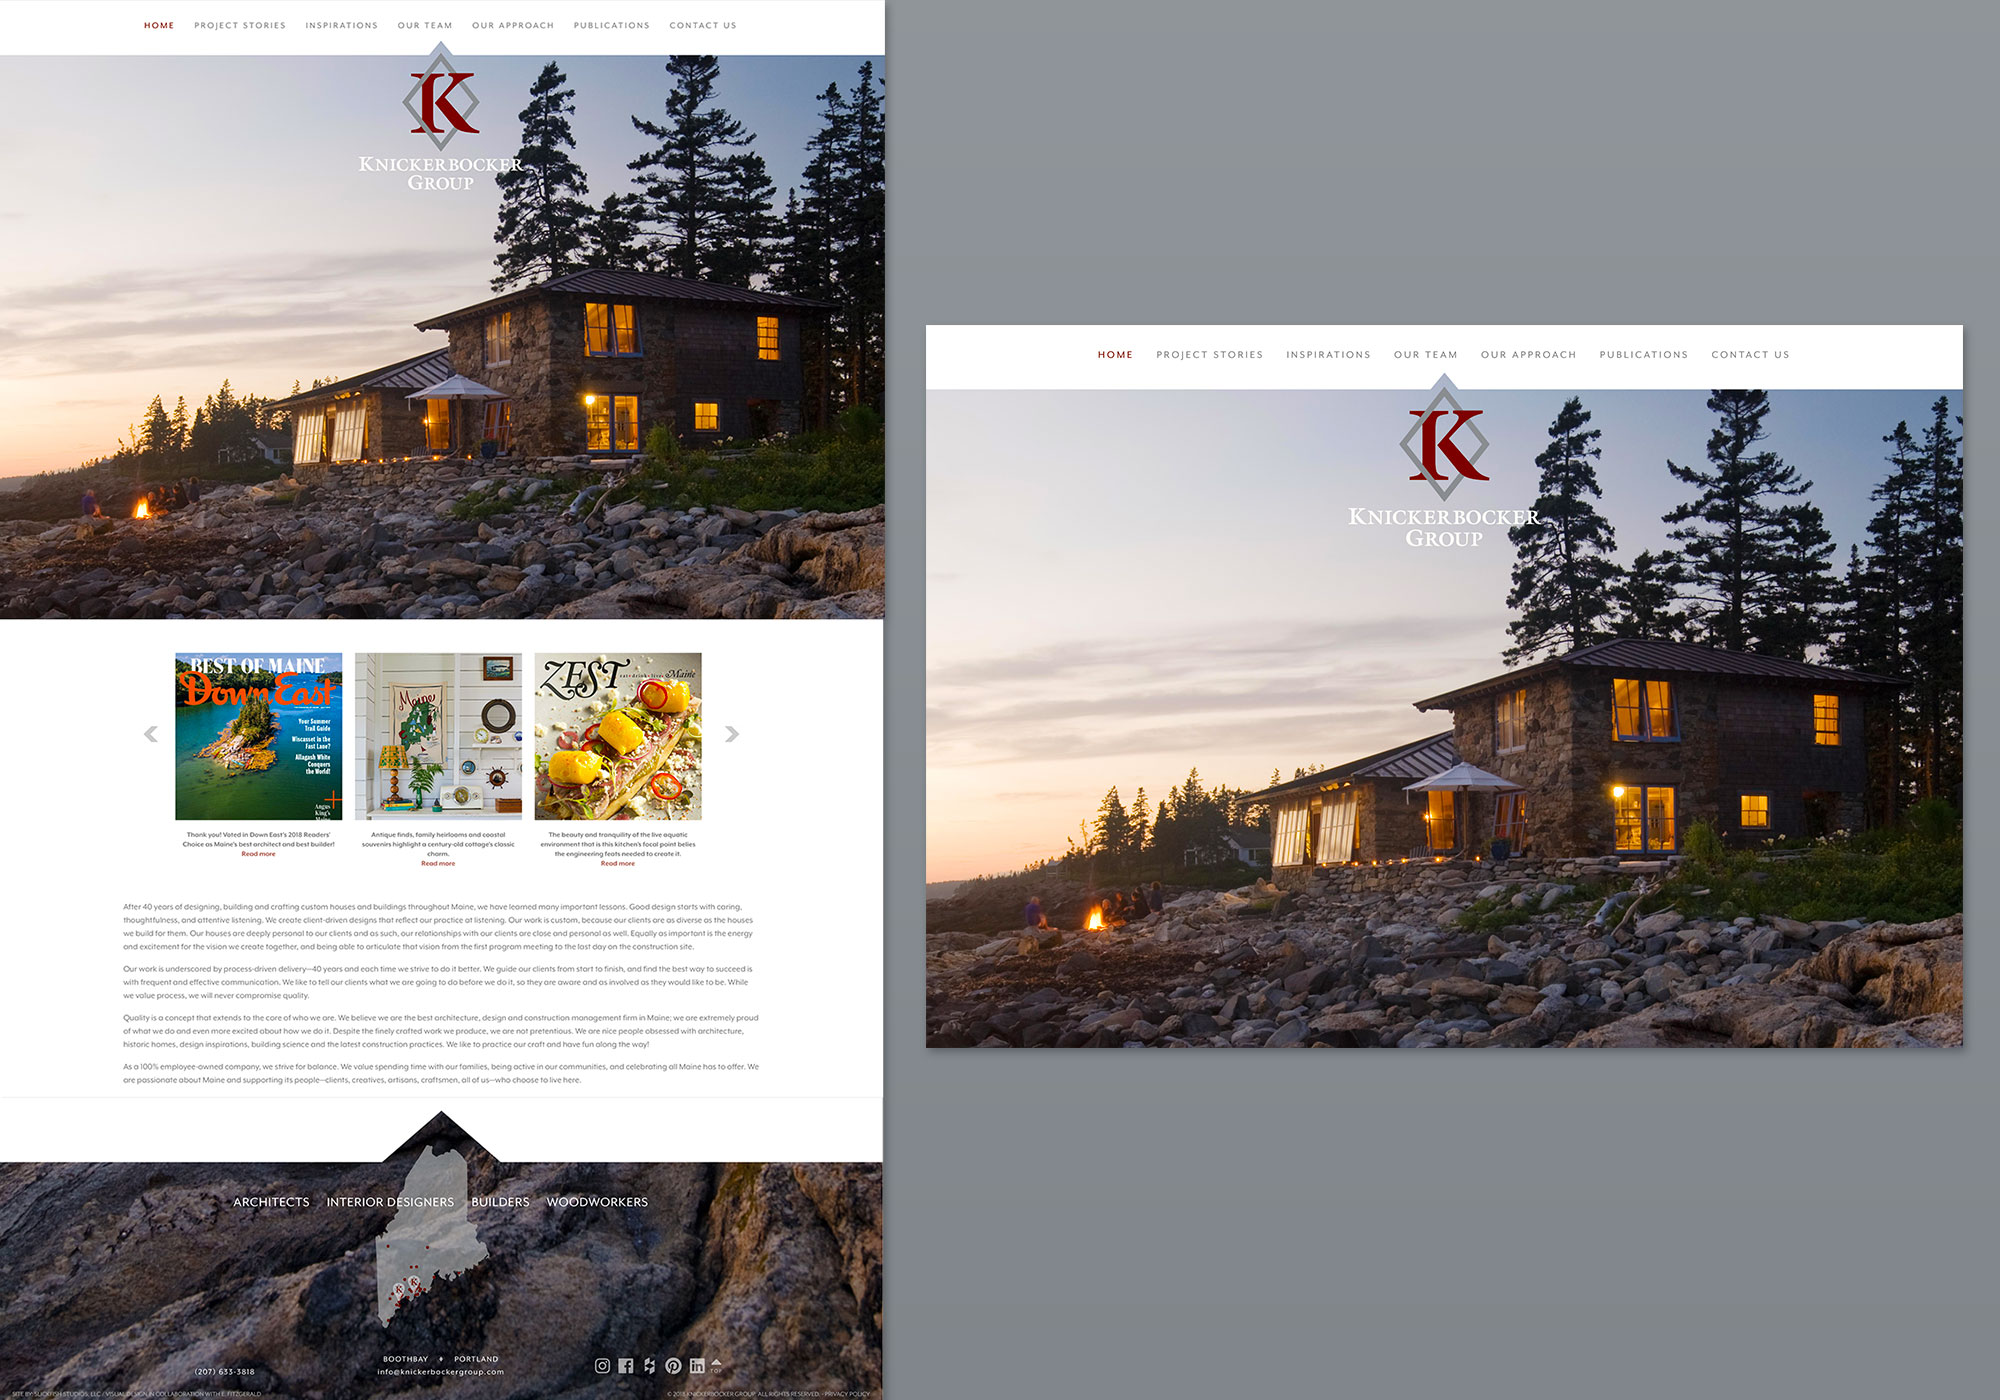 A full-size view of the homepage for Knickerbocker Group designed by SlickFish Studios in Portland, Maine.